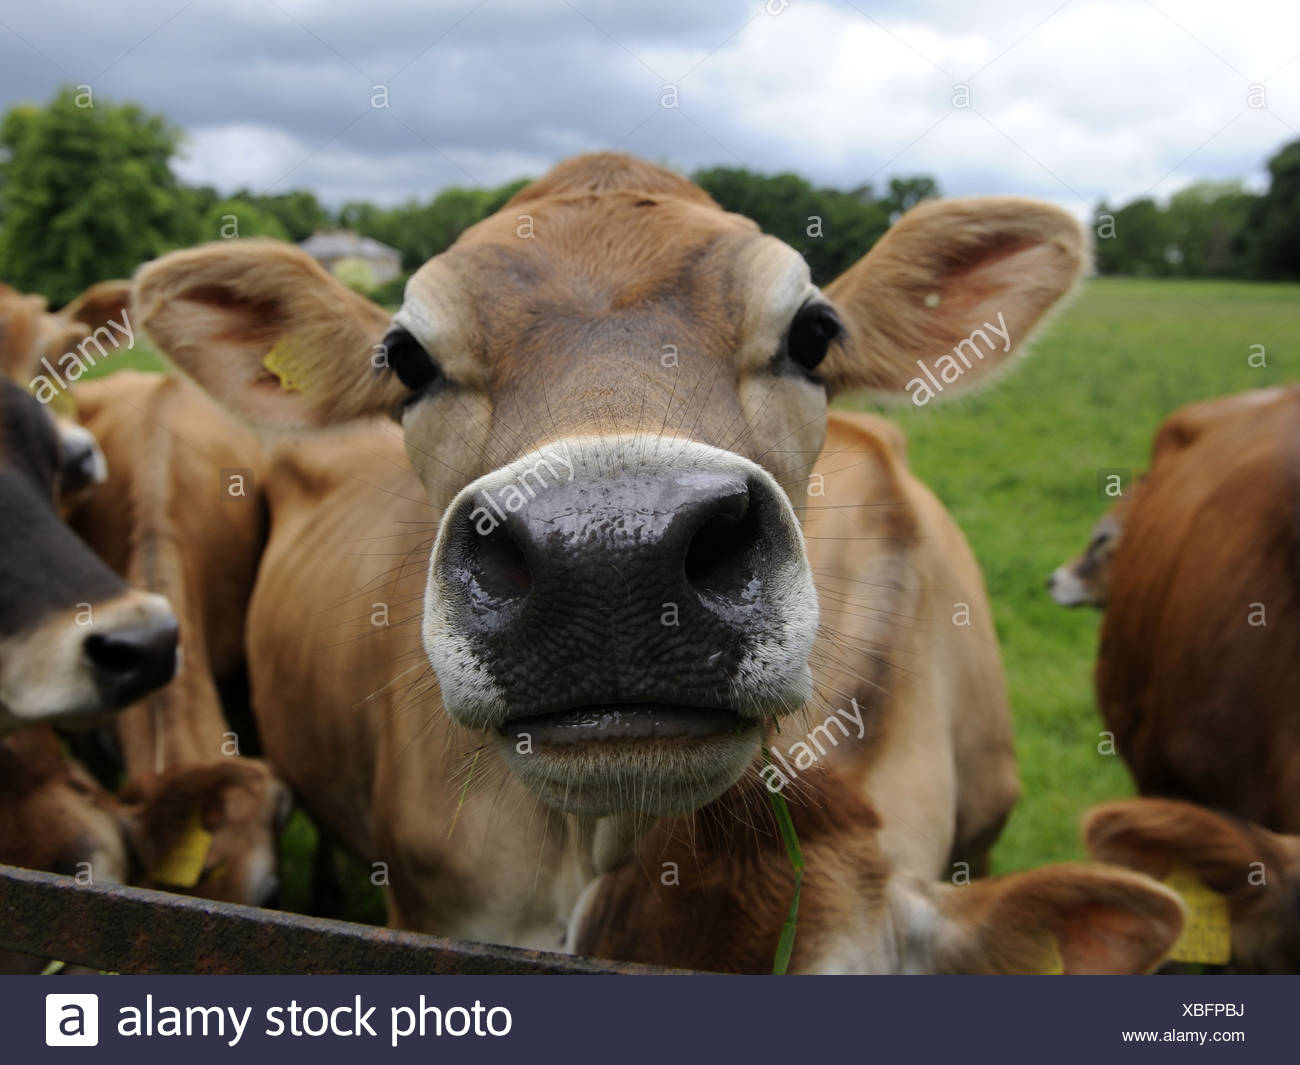 A group of jersey cows in a feld - Stock Image